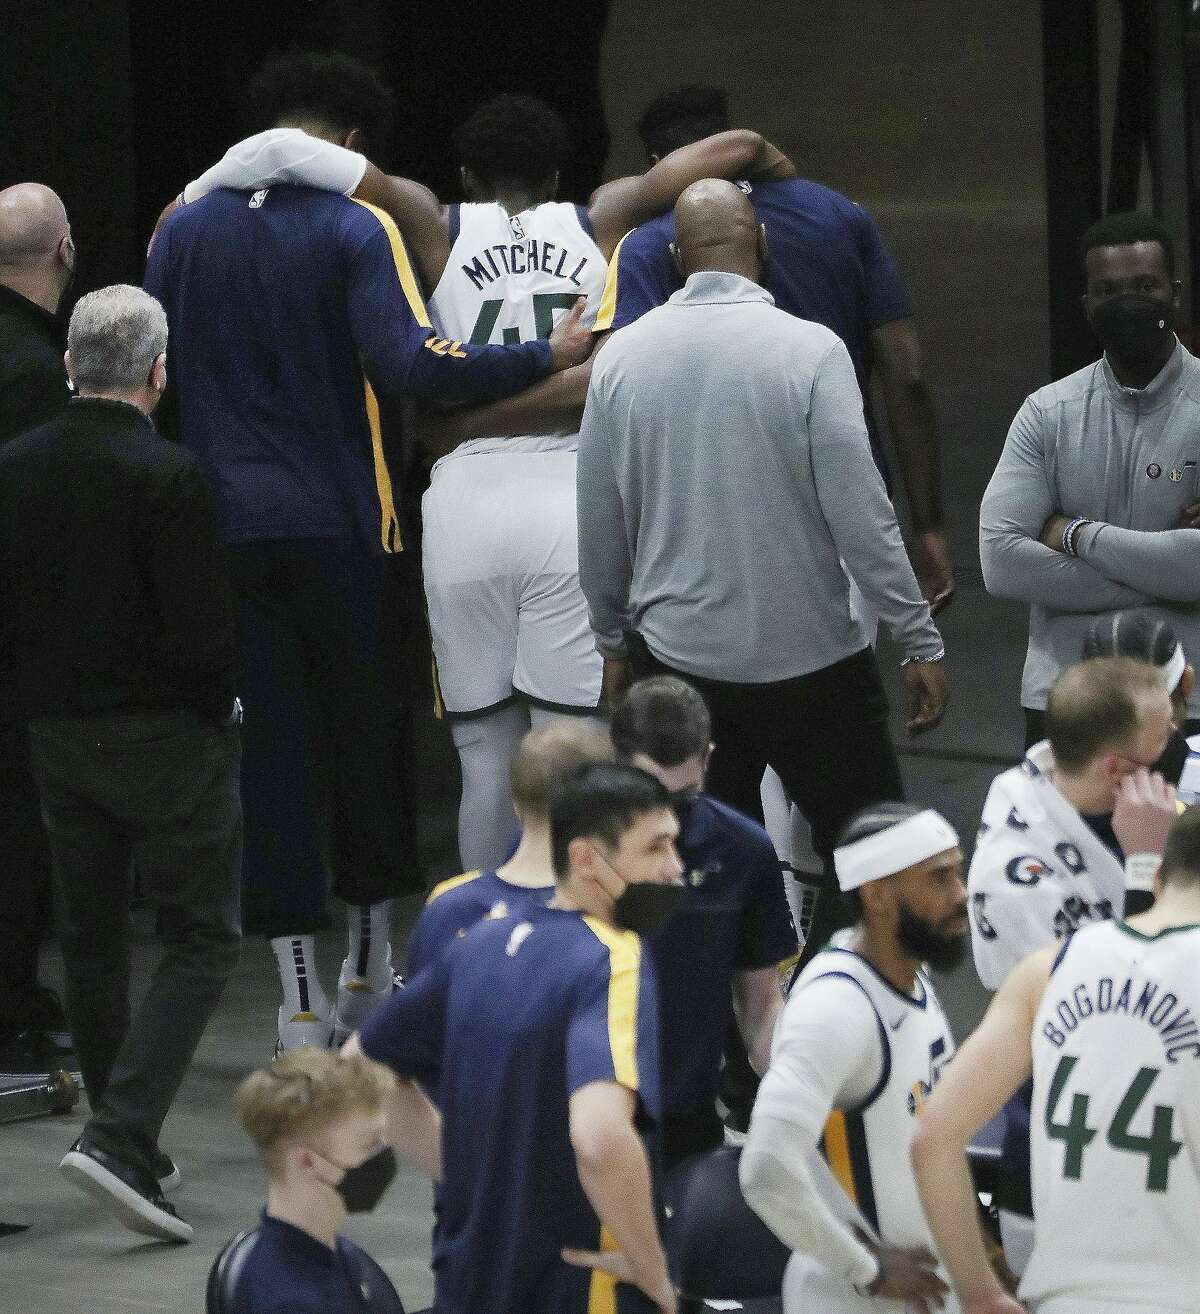 Jazz guard Donovan Mitchell is helped off the court by teammates after suffering an injury in the second half. He was to undergo an MRI exam.